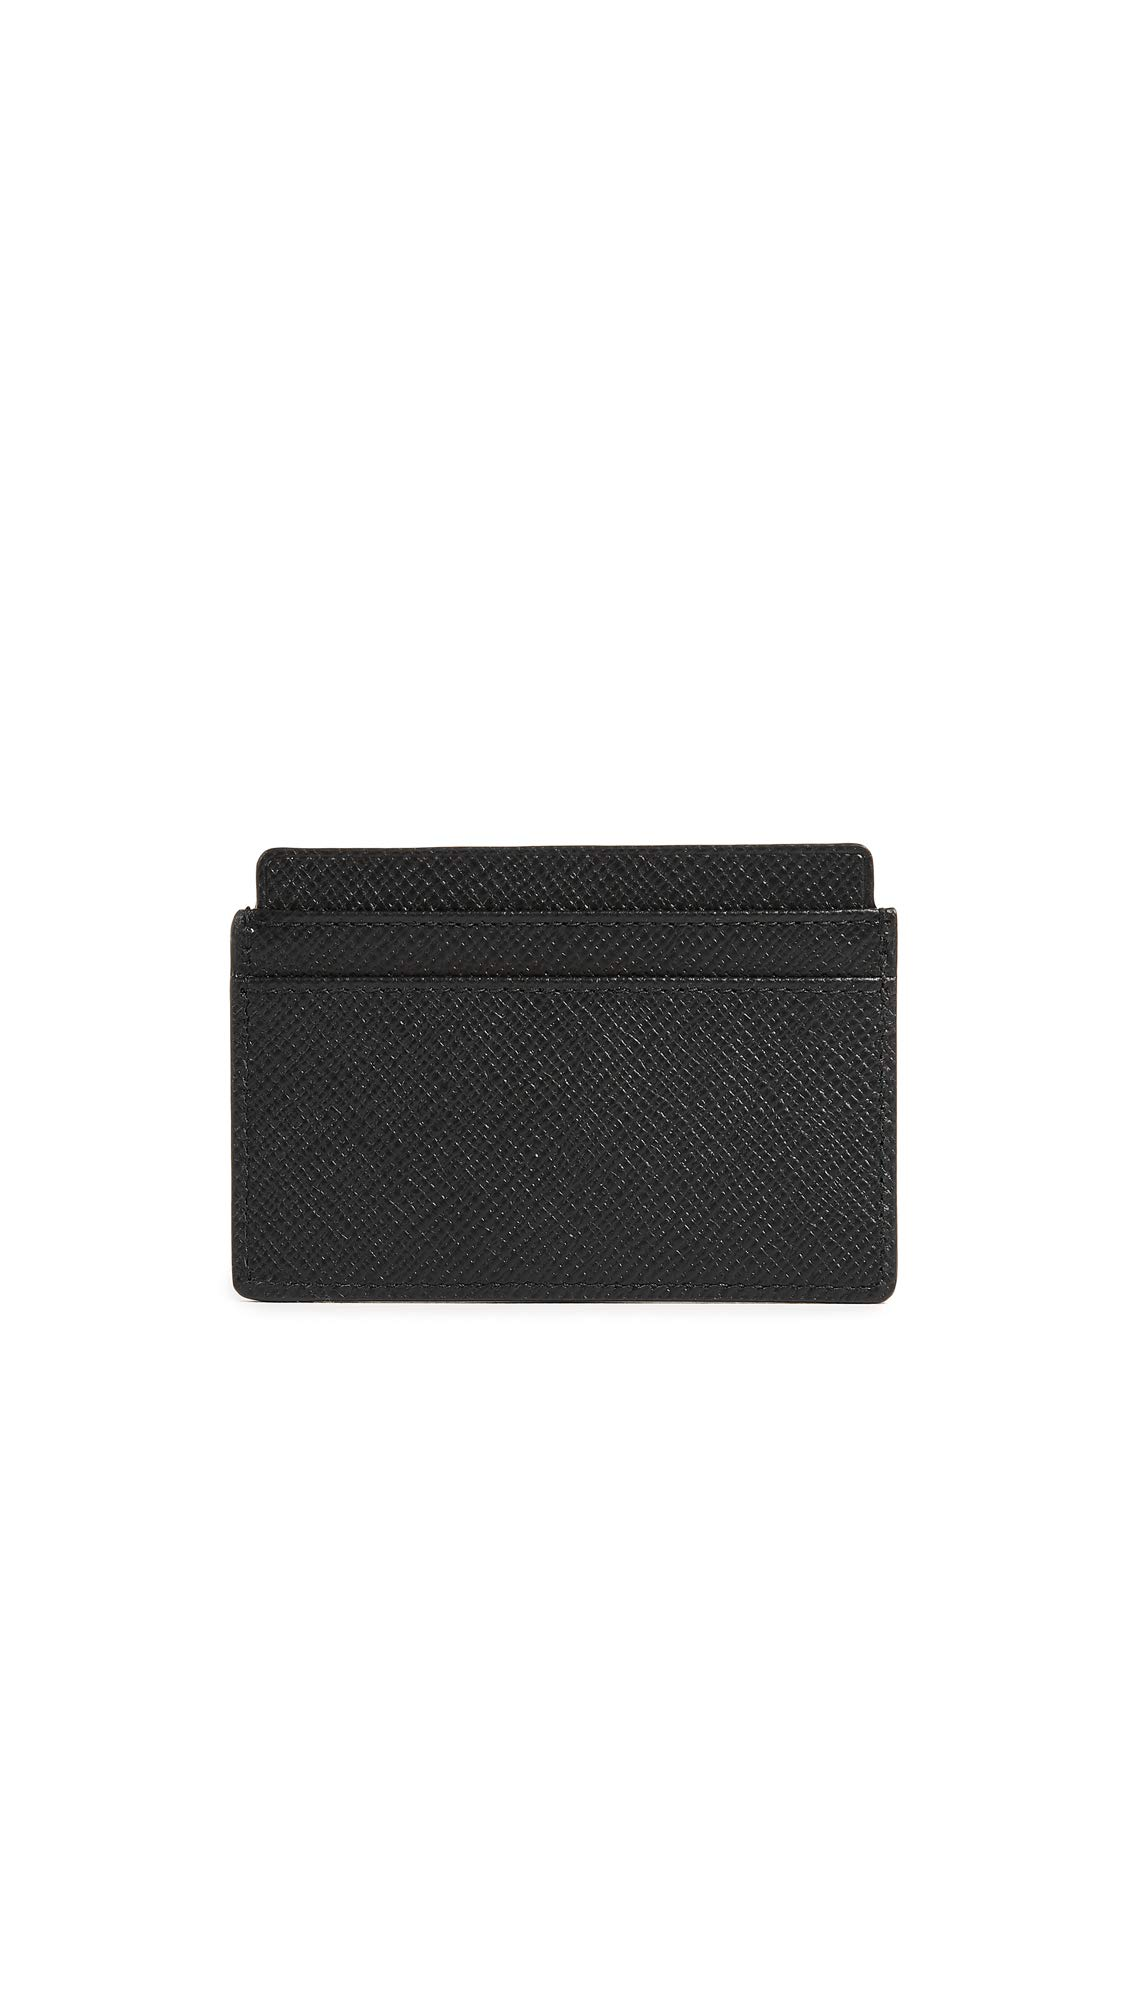 Smythson Women's Panama Flat Card Holder, Black, One Size